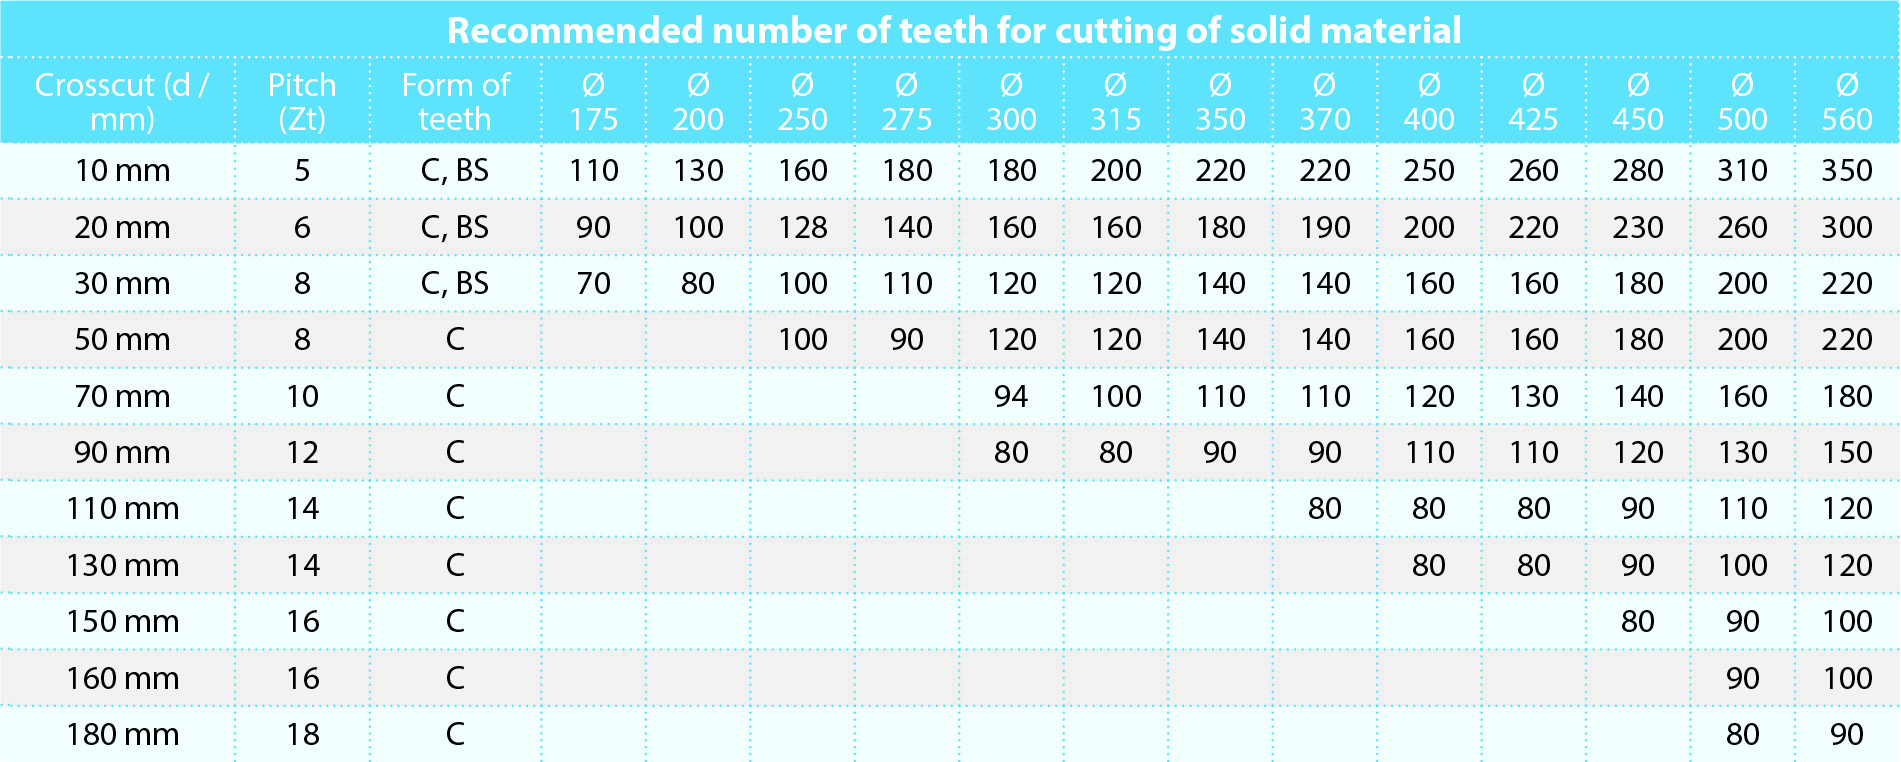 Teeth number + Toof form we recommend for cutting solid material